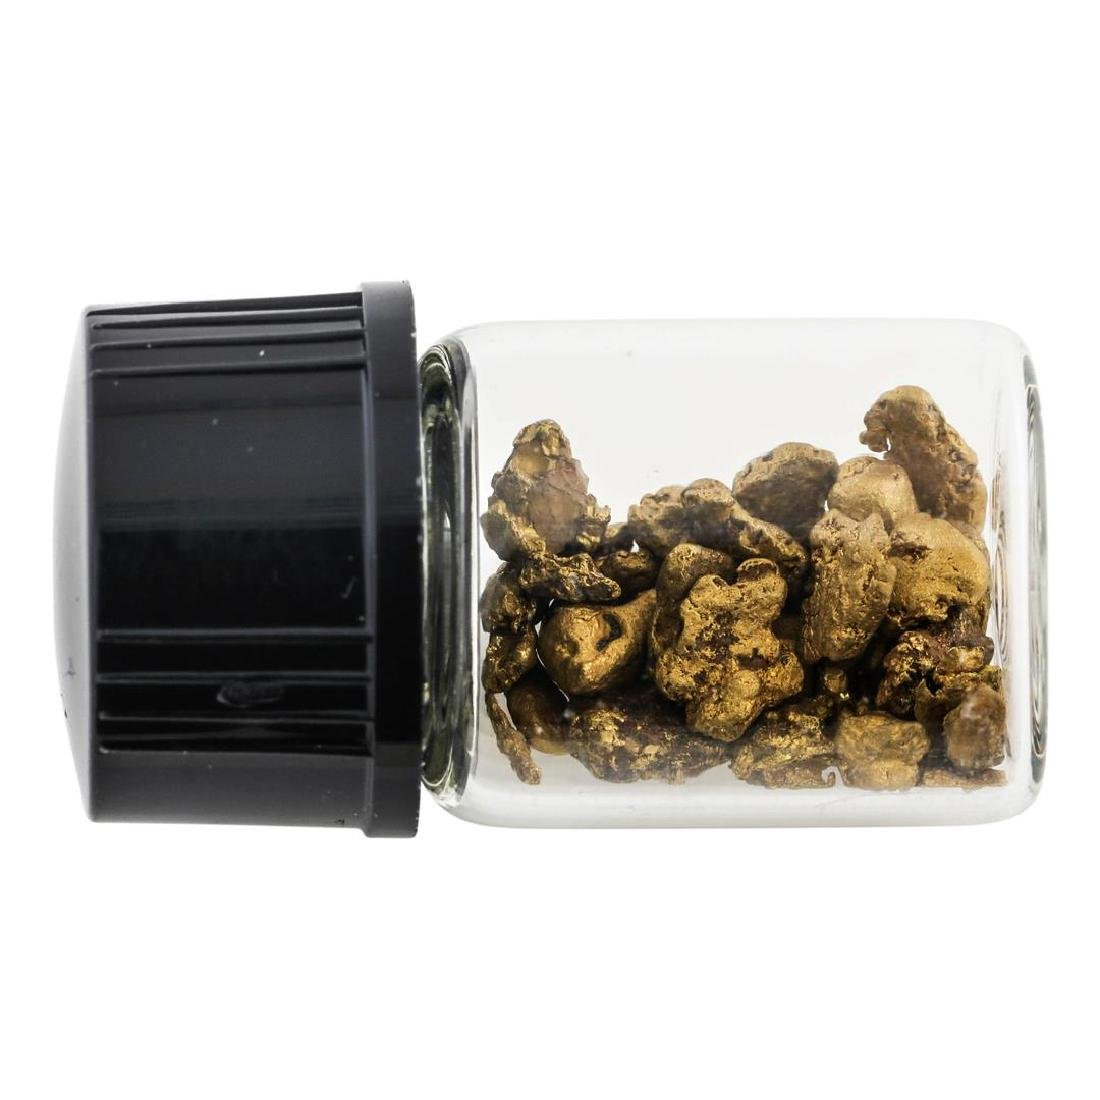 Lot of Gold Nuggets 5.4 grams Total Weight